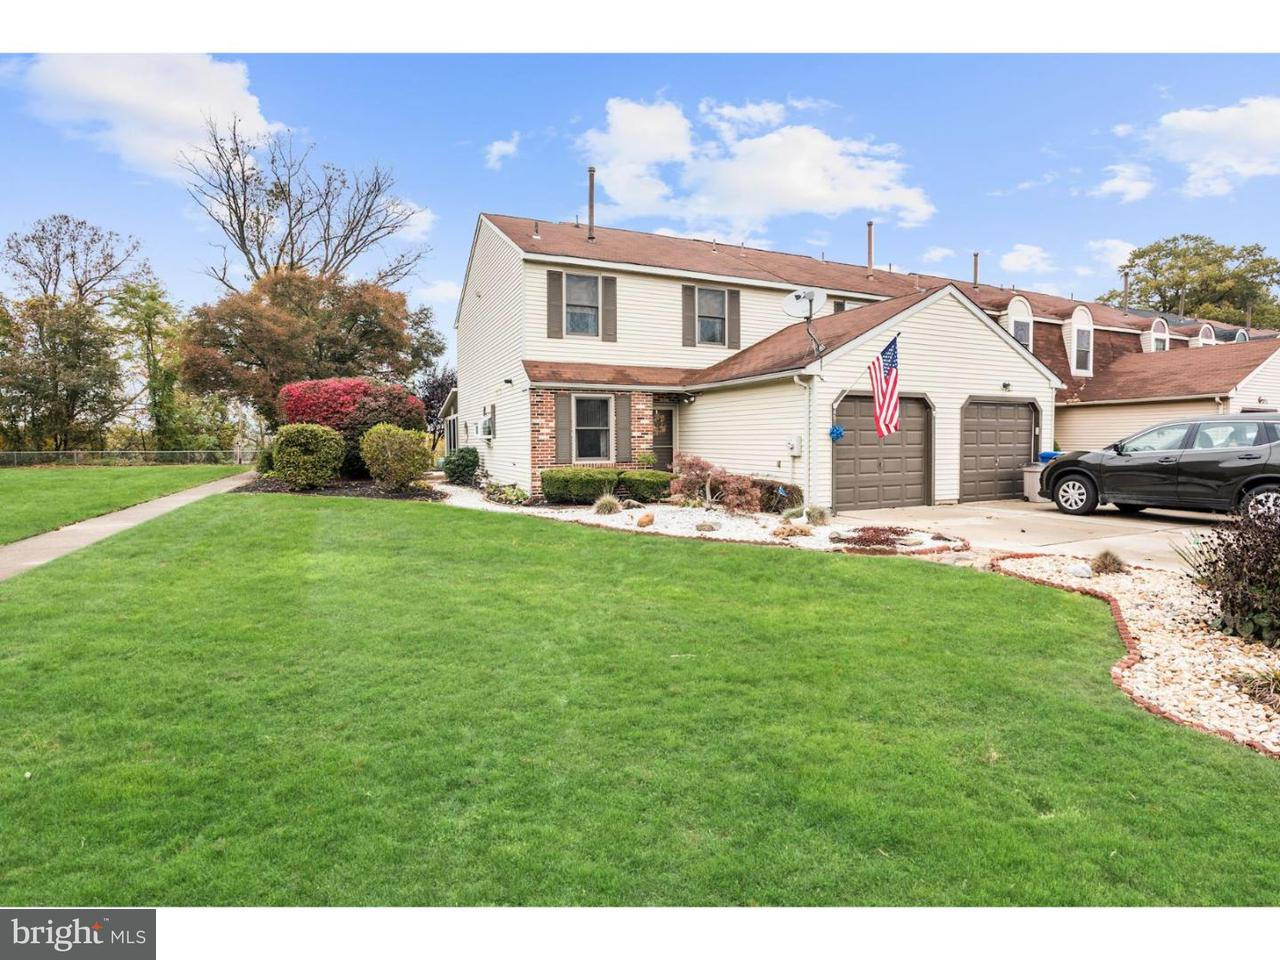 Townhouse for Sale at 49 RIVER BANK Drive Roebling, New Jersey 08554 United States